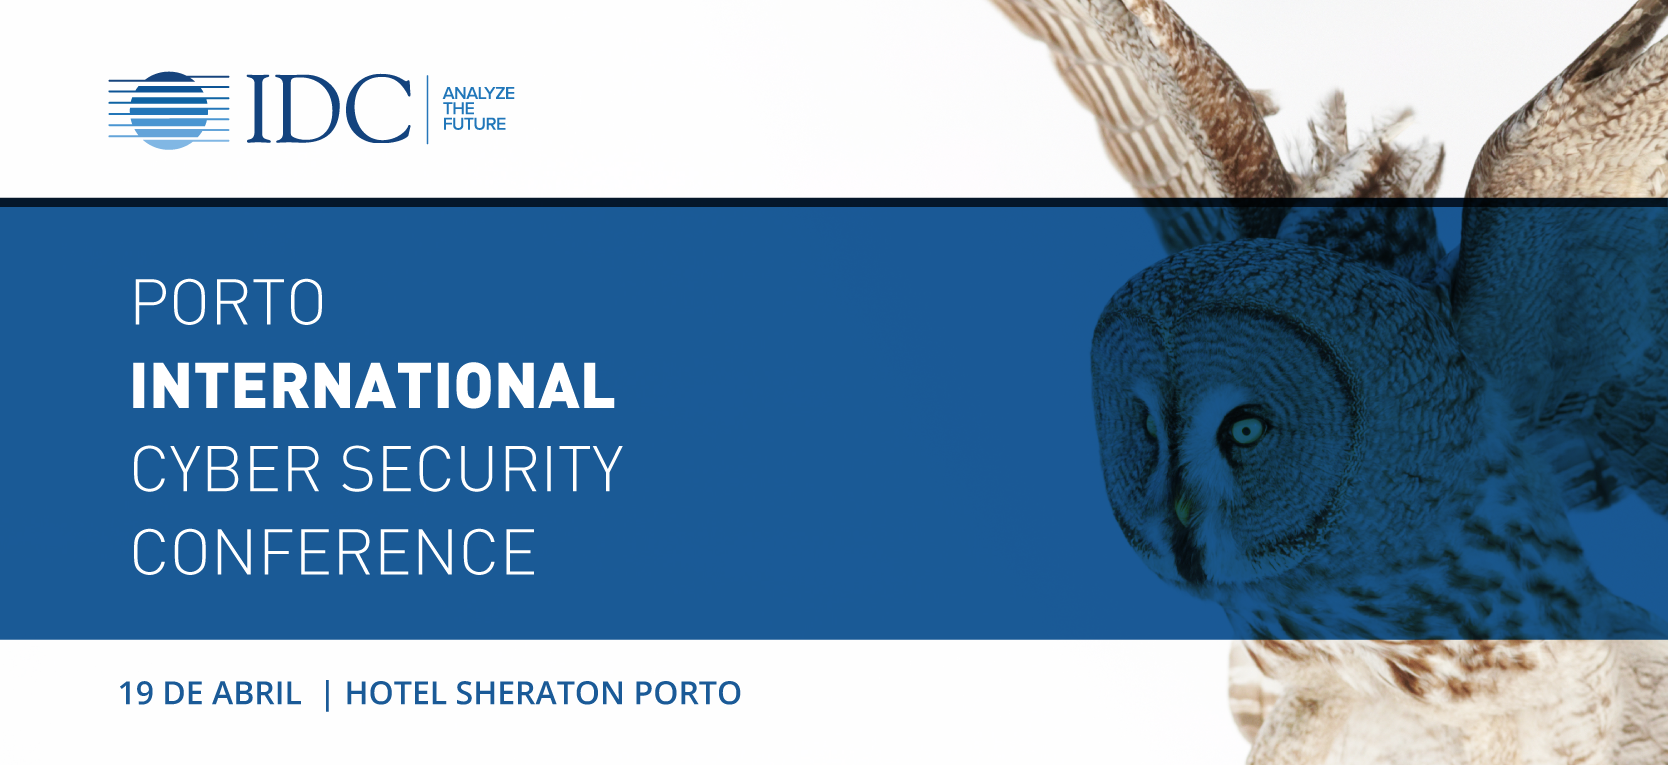 IDC PORTO INTERNATIONAL CYBERSECURITY CONFERENCE 2018